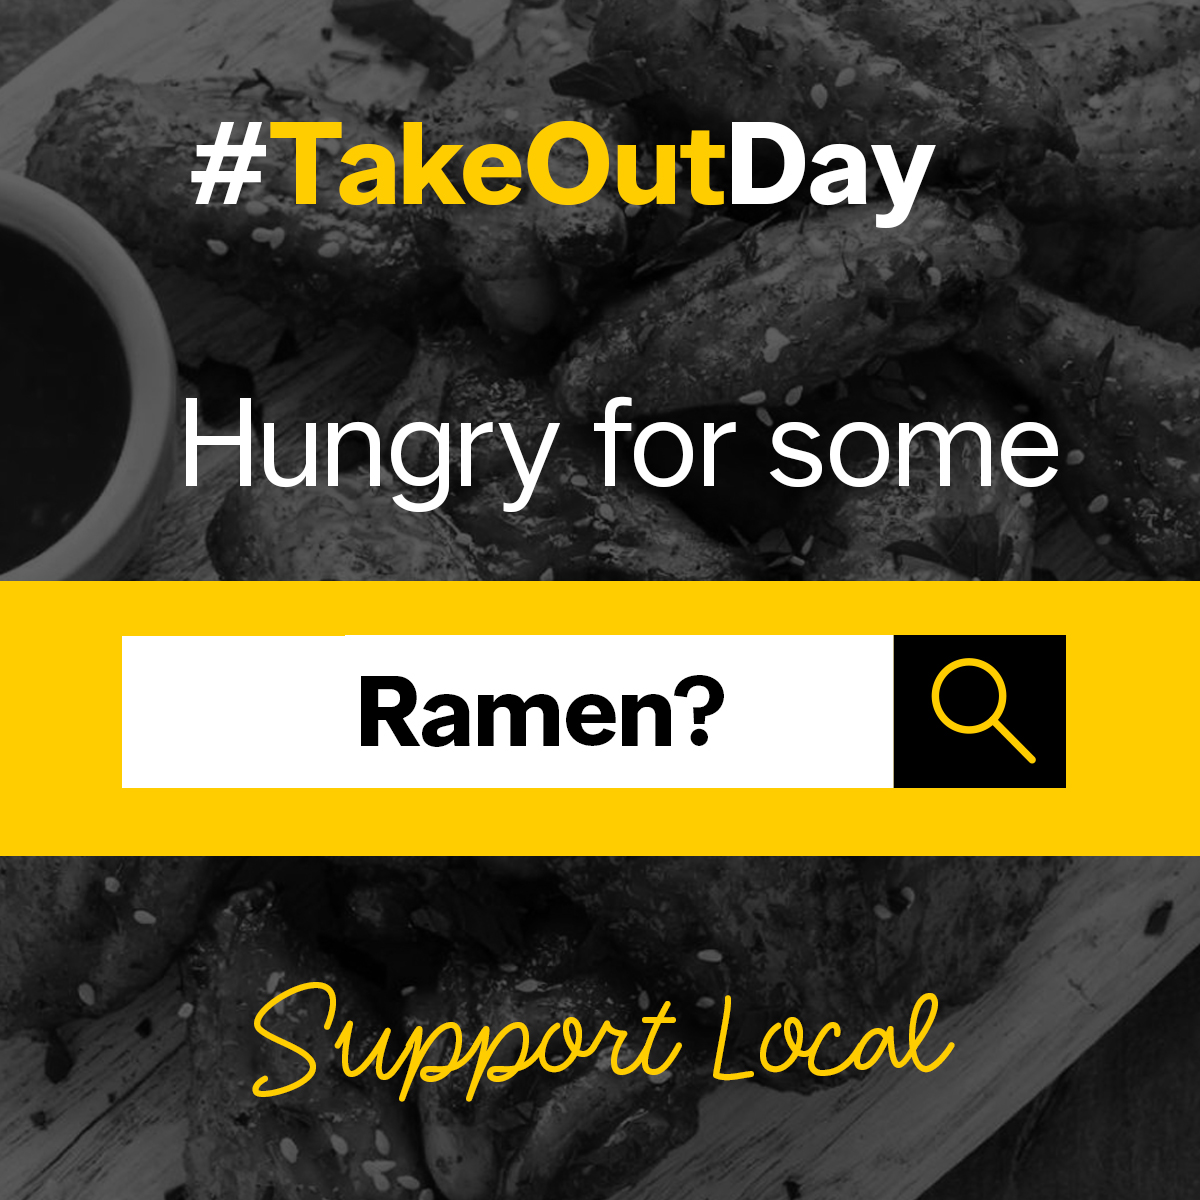 Support your local Ramen spots by ordering a big bowl of noodles and enjoying all the rich flavours right from the comfort of your home with #TakeOutDay!   ----> https://t.co/0tWMlJwCpb https://t.co/CnQt2RajrL